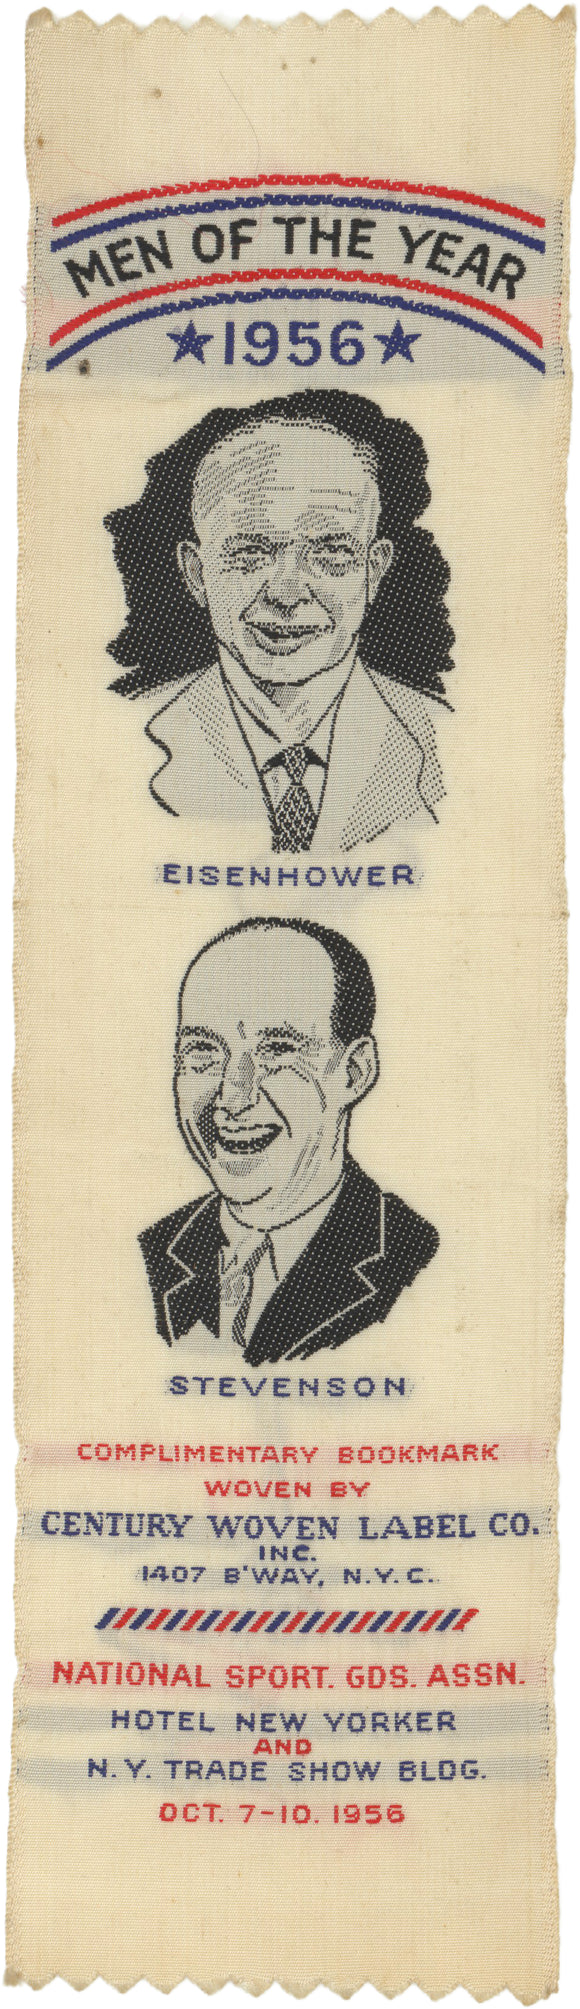 MEN OF THE YEAR 1956  EISENHOWER  STEVENSON